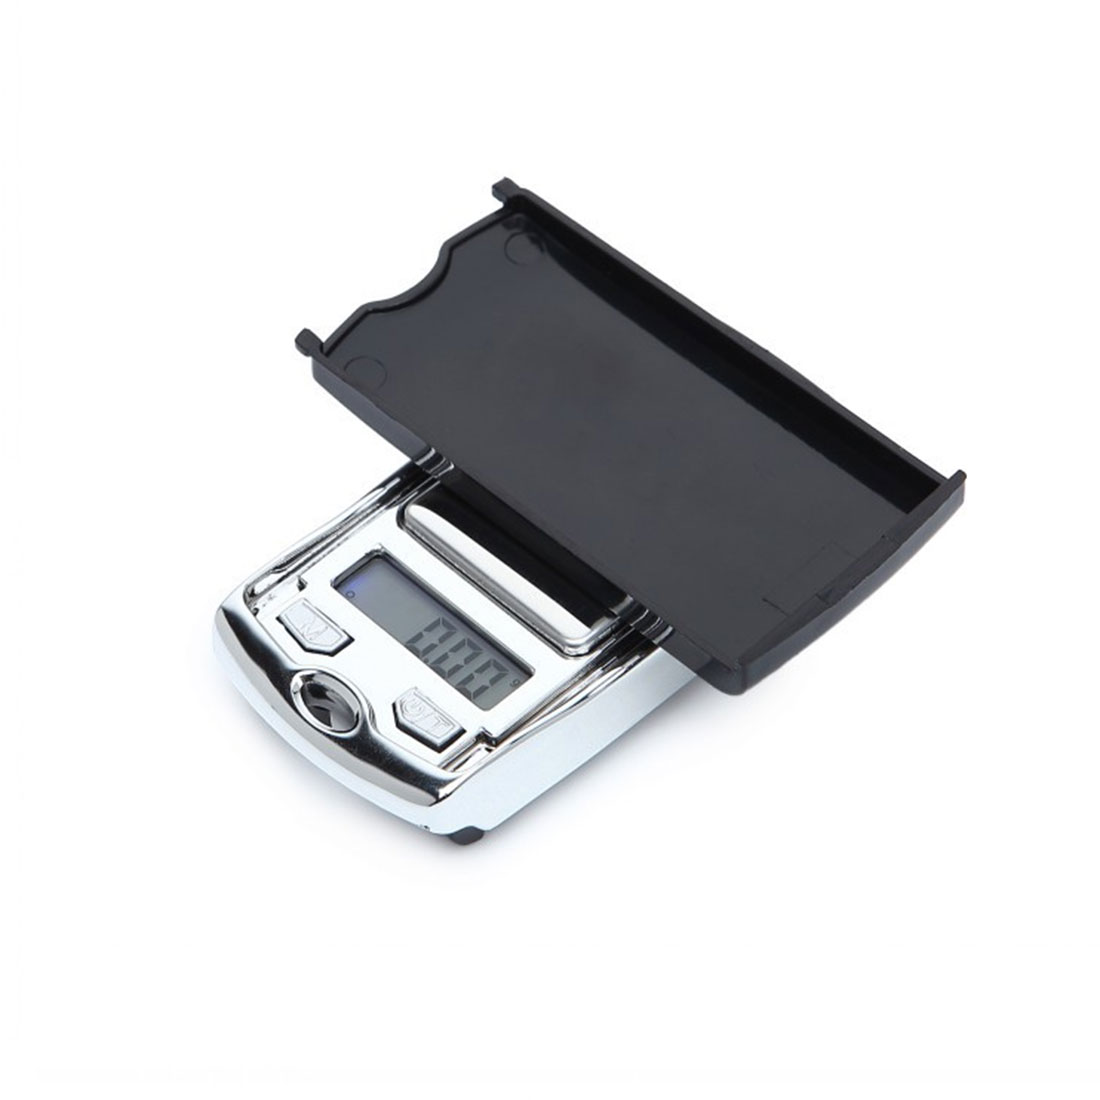 100g x <font><b>0.01g</b></font> Portable Mini Precision <font><b>Digital</b></font> <font><b>Scales</b></font> for Gold Sterling Silver <font><b>Scale</b></font> Jewelry 0.01 Weight Electronic <font><b>Scales</b></font> image